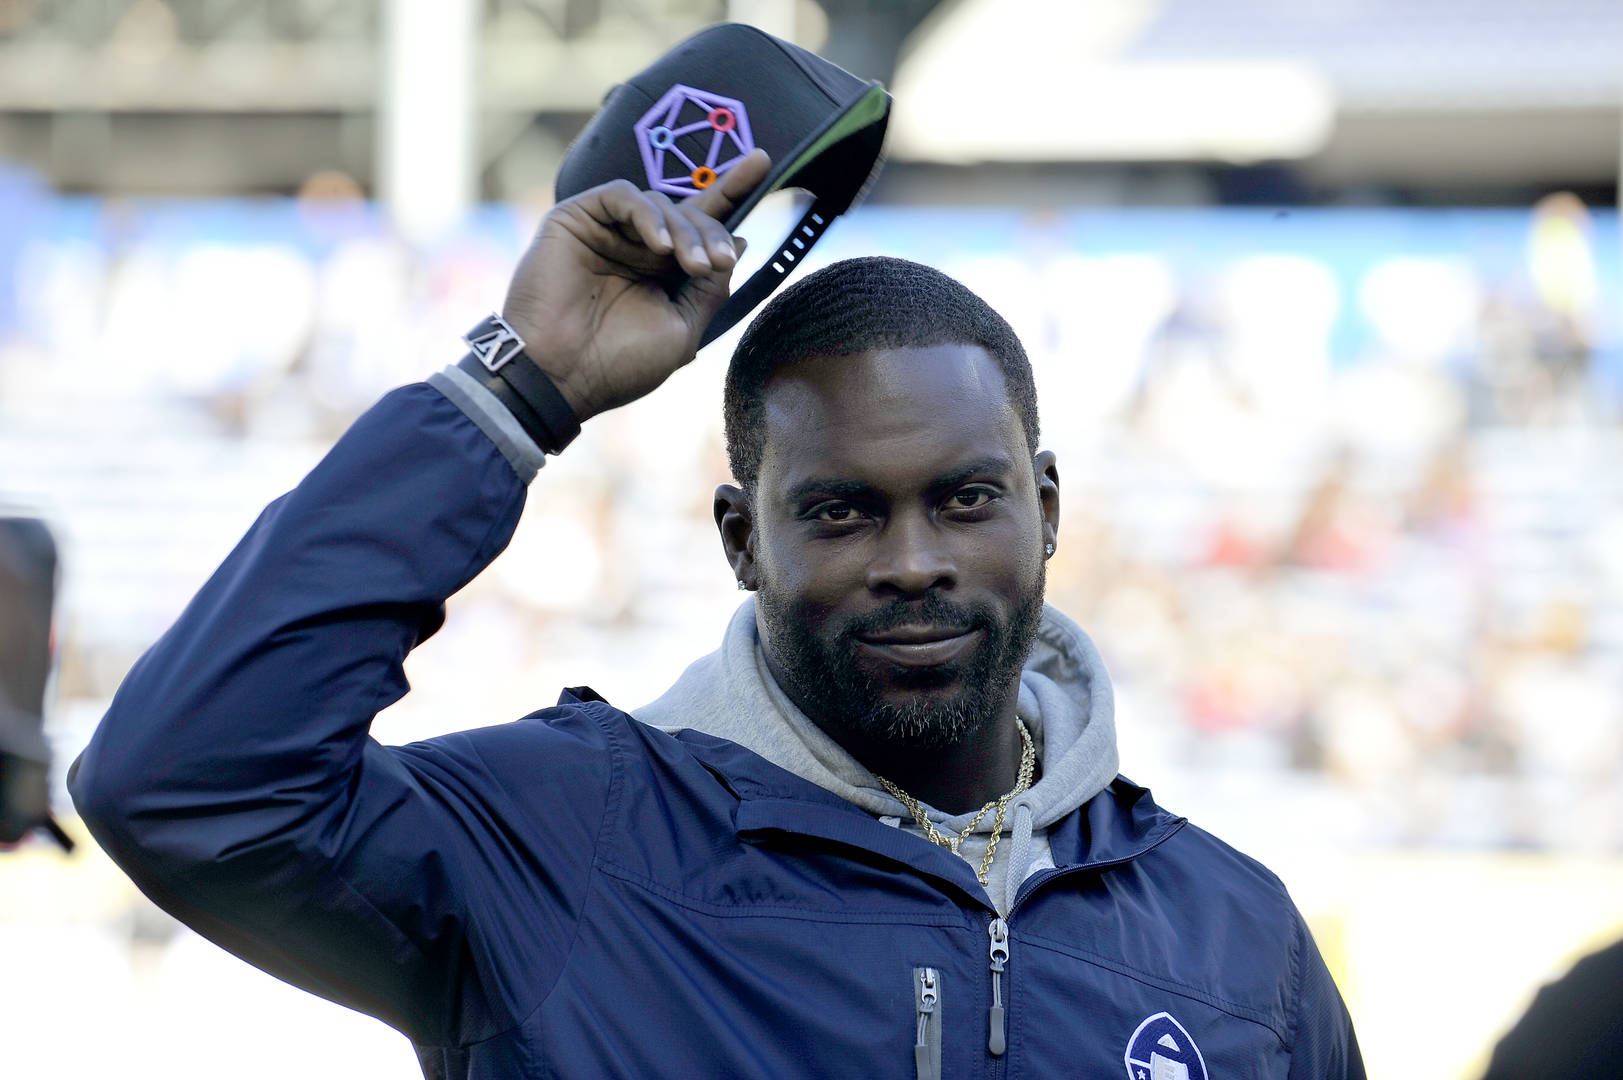 Michael Vick's Pro Bowl Honor Leads To Huge Petition Against Him